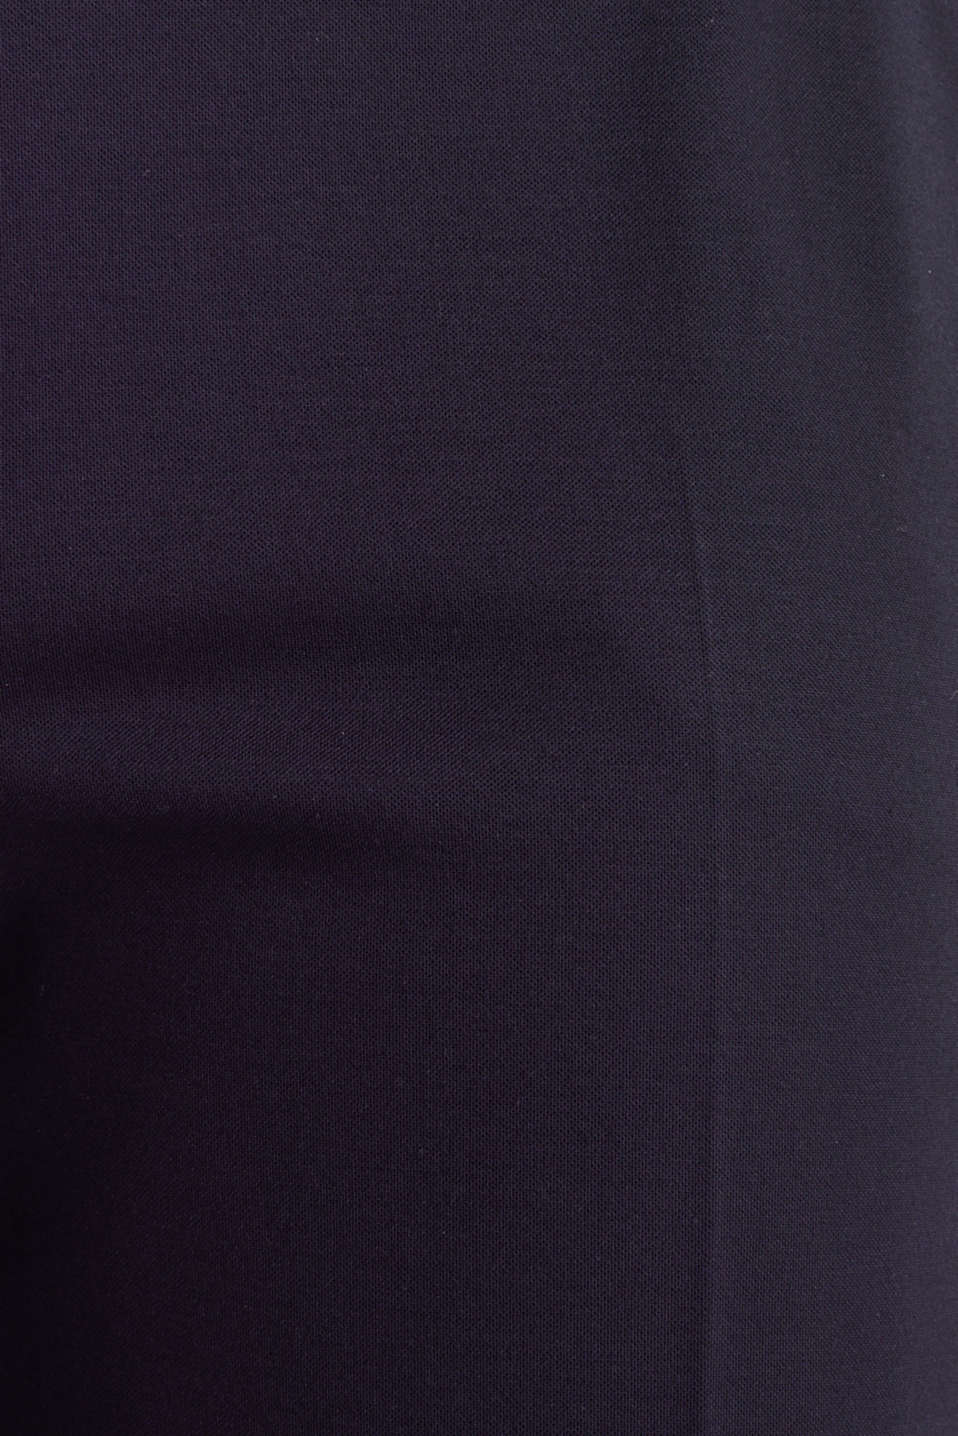 Stretch jersey culottes, NAVY, detail image number 4